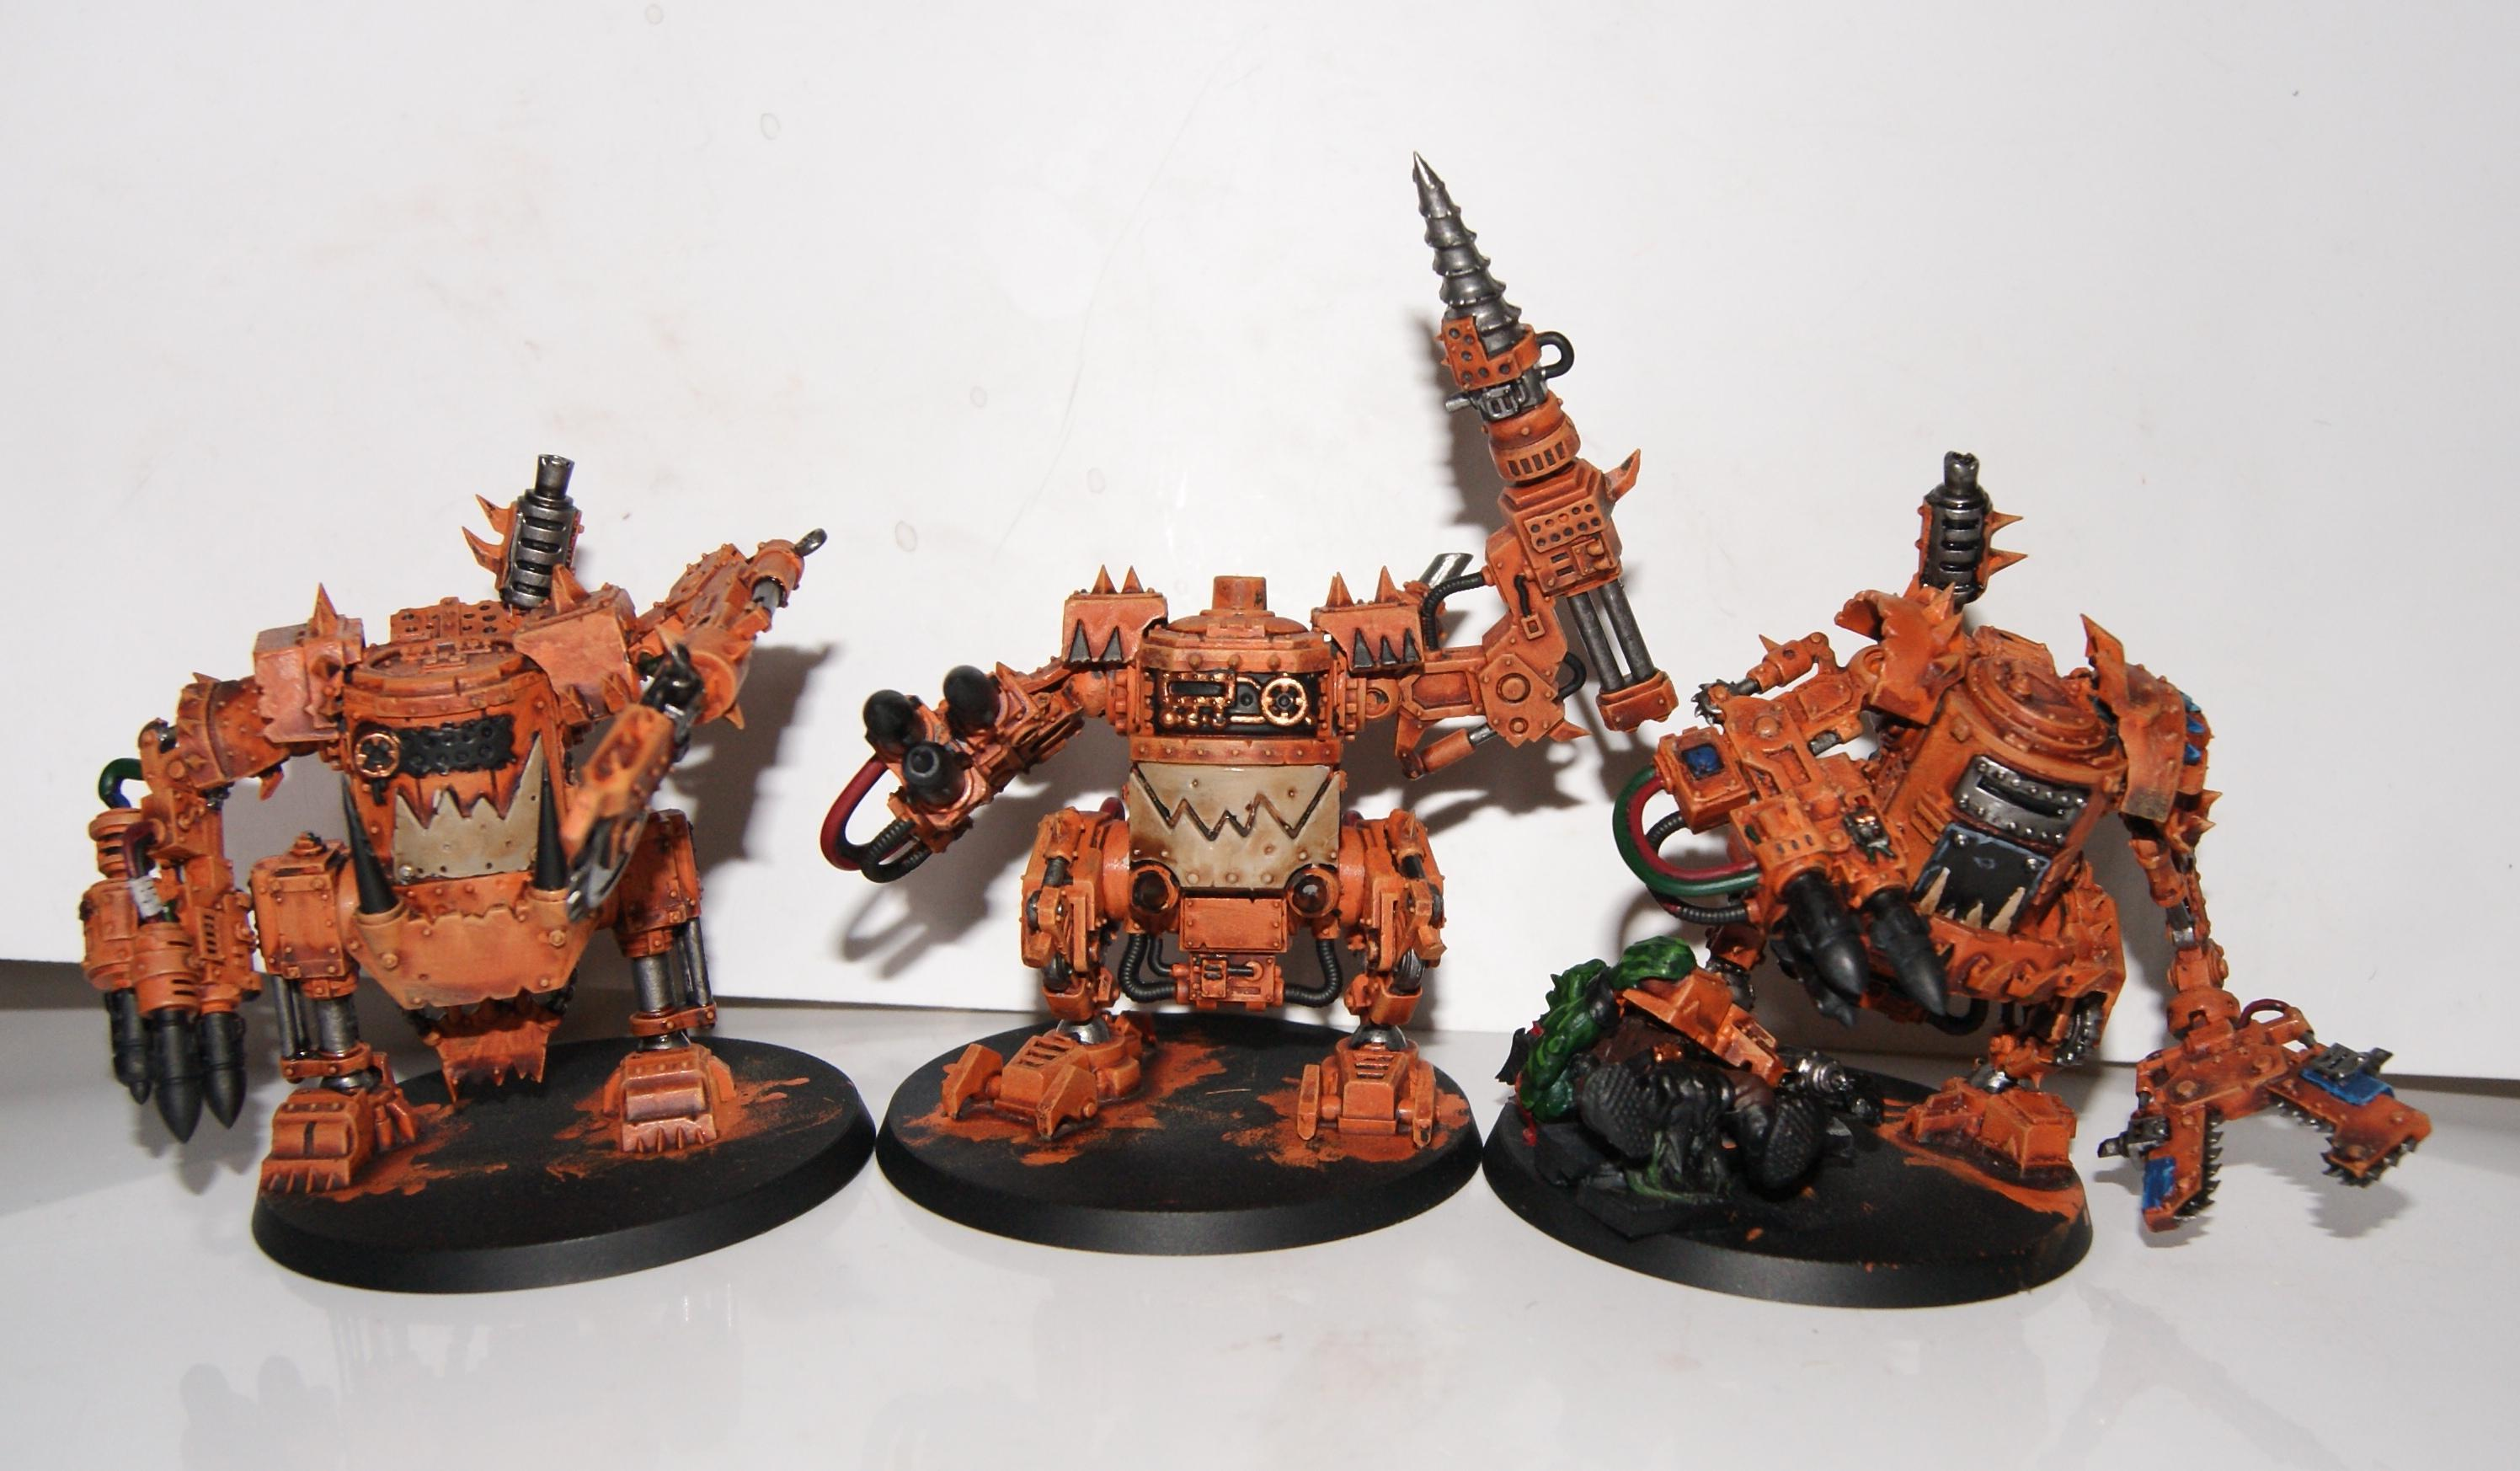 Conversion, Grot Rebellion, Grot Rebels, Grots, Killa Kans, Warhammer 40,000